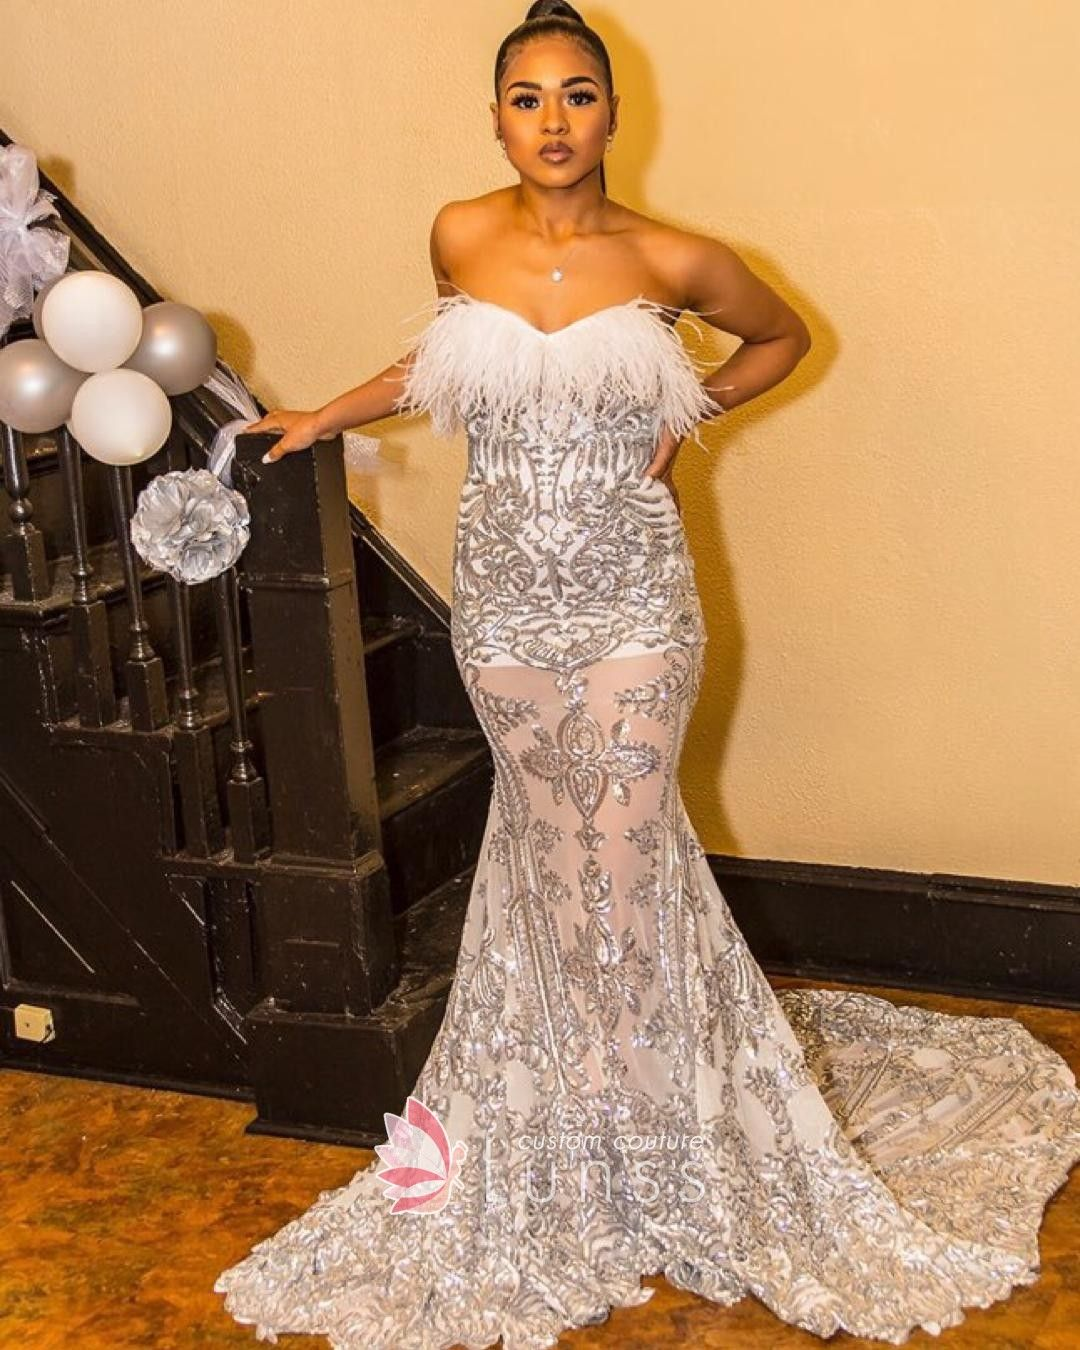 Strapless Evening Gown With Sheer Bodice Covered With: Silver Strapless Feather Sheer Mermaid Prom Dress In 2020